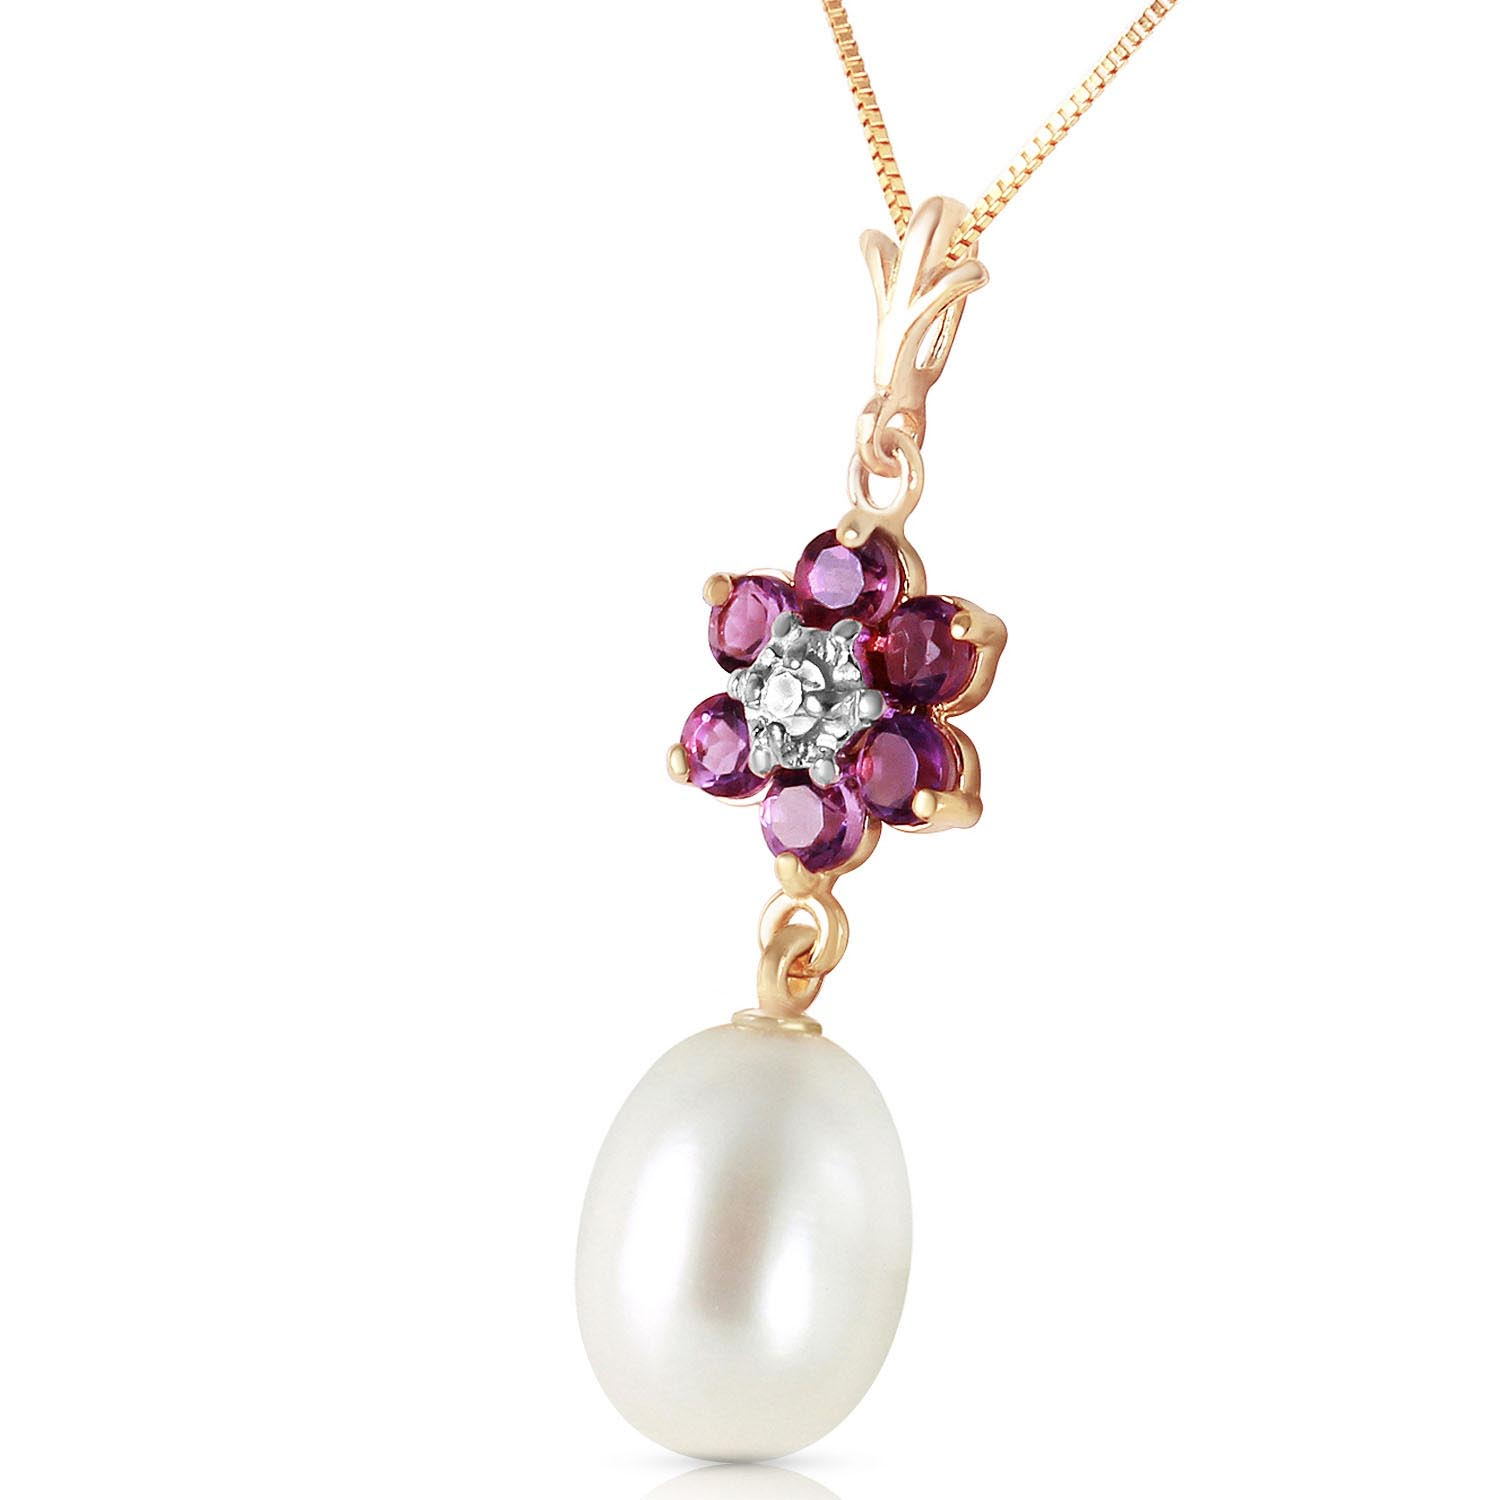 Pearl, Amethyst and Diamond Daisy Pendant Necklace 4.5ctw in 9ct Gold